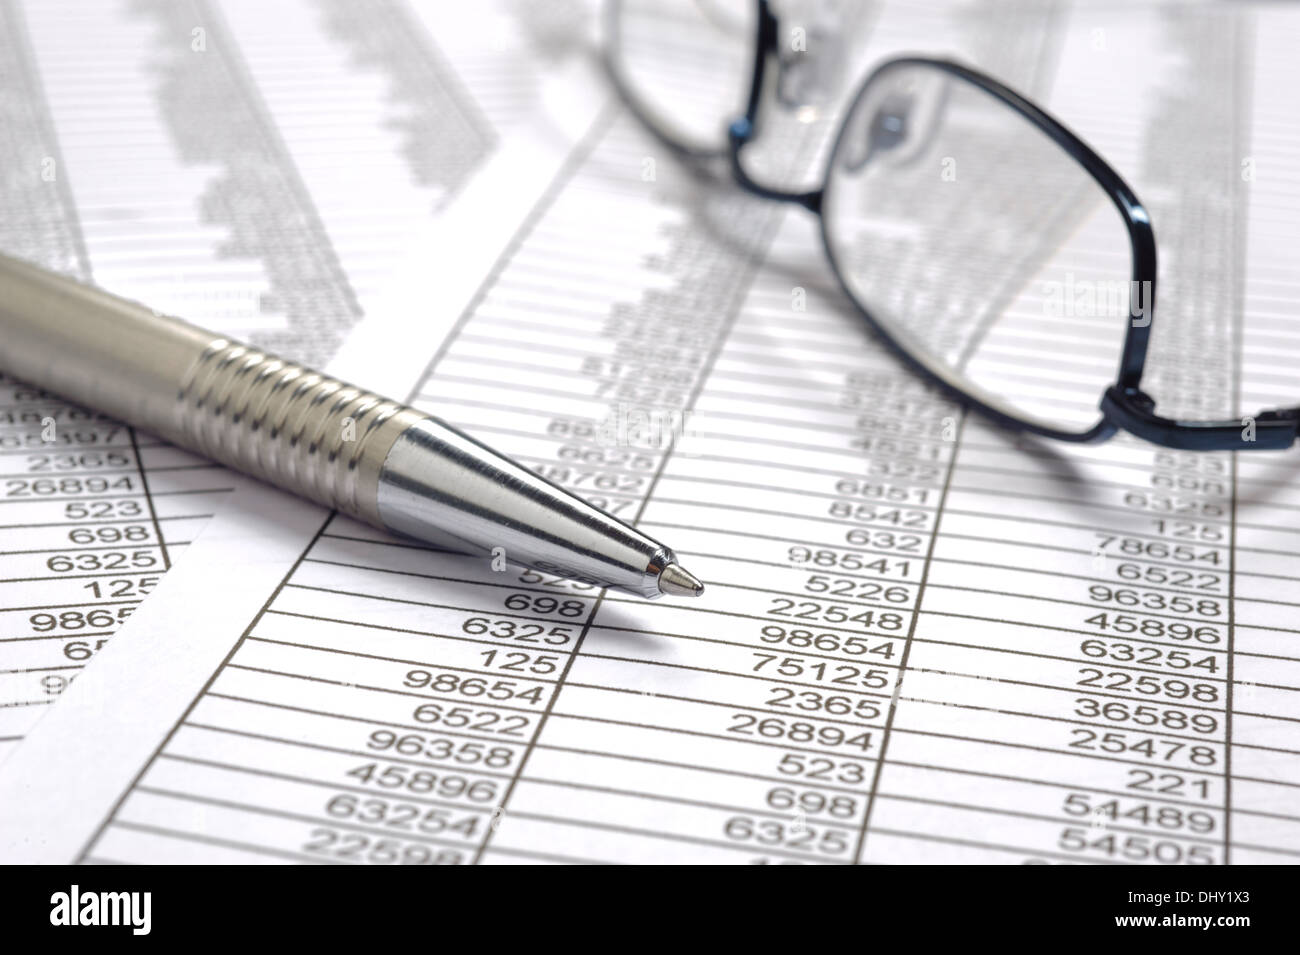 finance business calculation with glasses, chart and pen - Stock Image